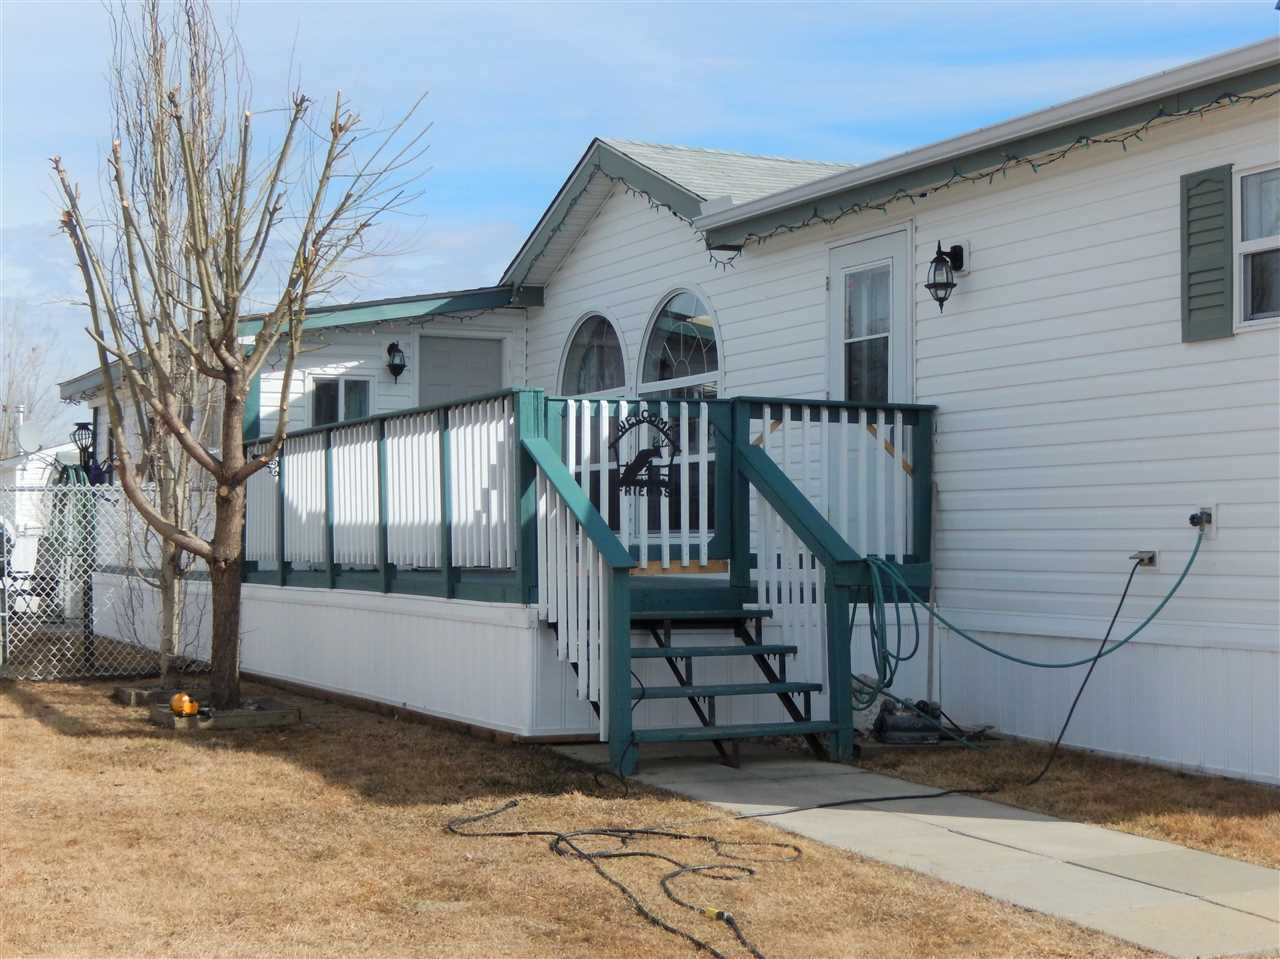 ORIGINAL OWNER! This well cared for home has much to offer with its 3 BEDRS, 2 BATHS & a LARGE ADDITION which is insulated & wired (no heat). It has 2 entrances - one at the front & one at the back (plus pet doors).  YARD is totally FENCED & there are 3 SHEDS (2 are wired- 10x16 ft, 8x12 ft, 3x6 ft.) Enjoy the SOUTHWEST FACING DECK. The living rm has LAMINATE, beautiful BIG WINDOWS...there is a DOUBLE SKYLIGHT in kitchen, plenty of counterspace, BRAND NEW DISHWASHER & a spacious dining area. The LARGE LAUNDRY RM has plenty of storage & freezer rm. Sitting at the back of home, the master has a large ENSUITE with JETTED TUB, plus WALK-IN CLOSET. There are 2 other bedrs & main bath at the front of the home.  Meridian Meadows is a wonderful community to live in and is very well managed.  Lot rent is only $375 /month.